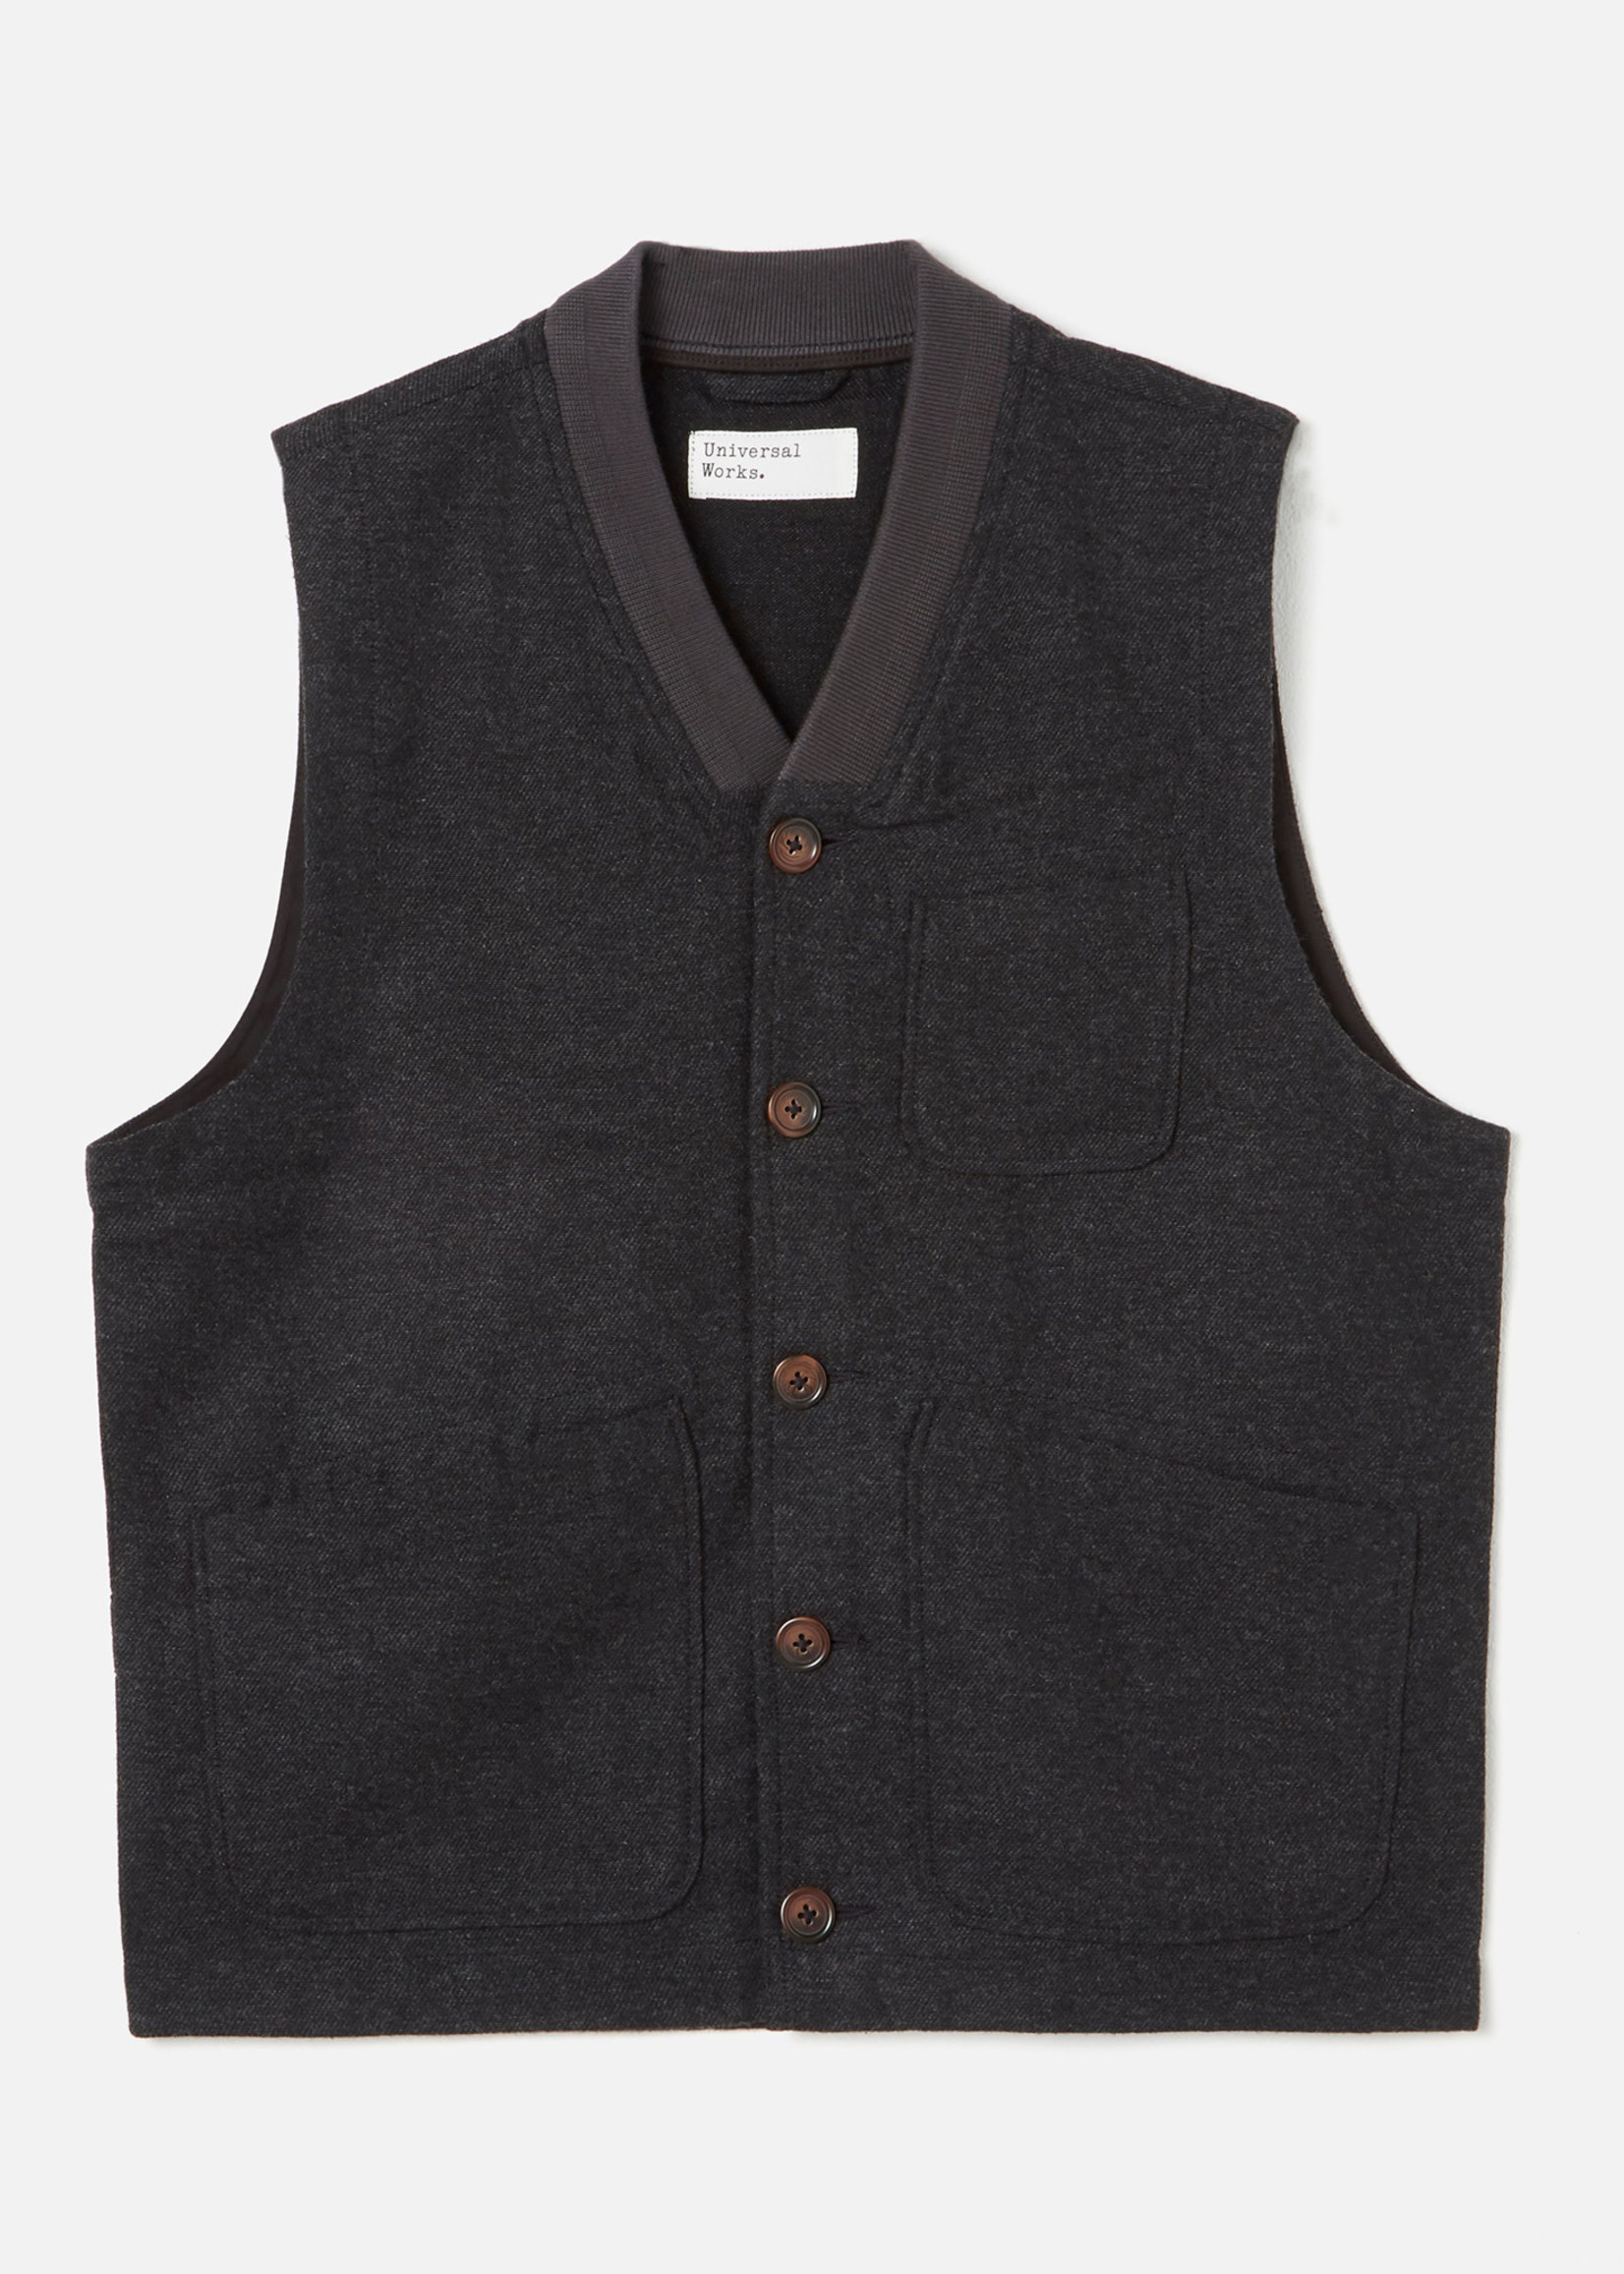 Universal Works Universal Works Brixton Waistcoat Charcoal Wool/Poly